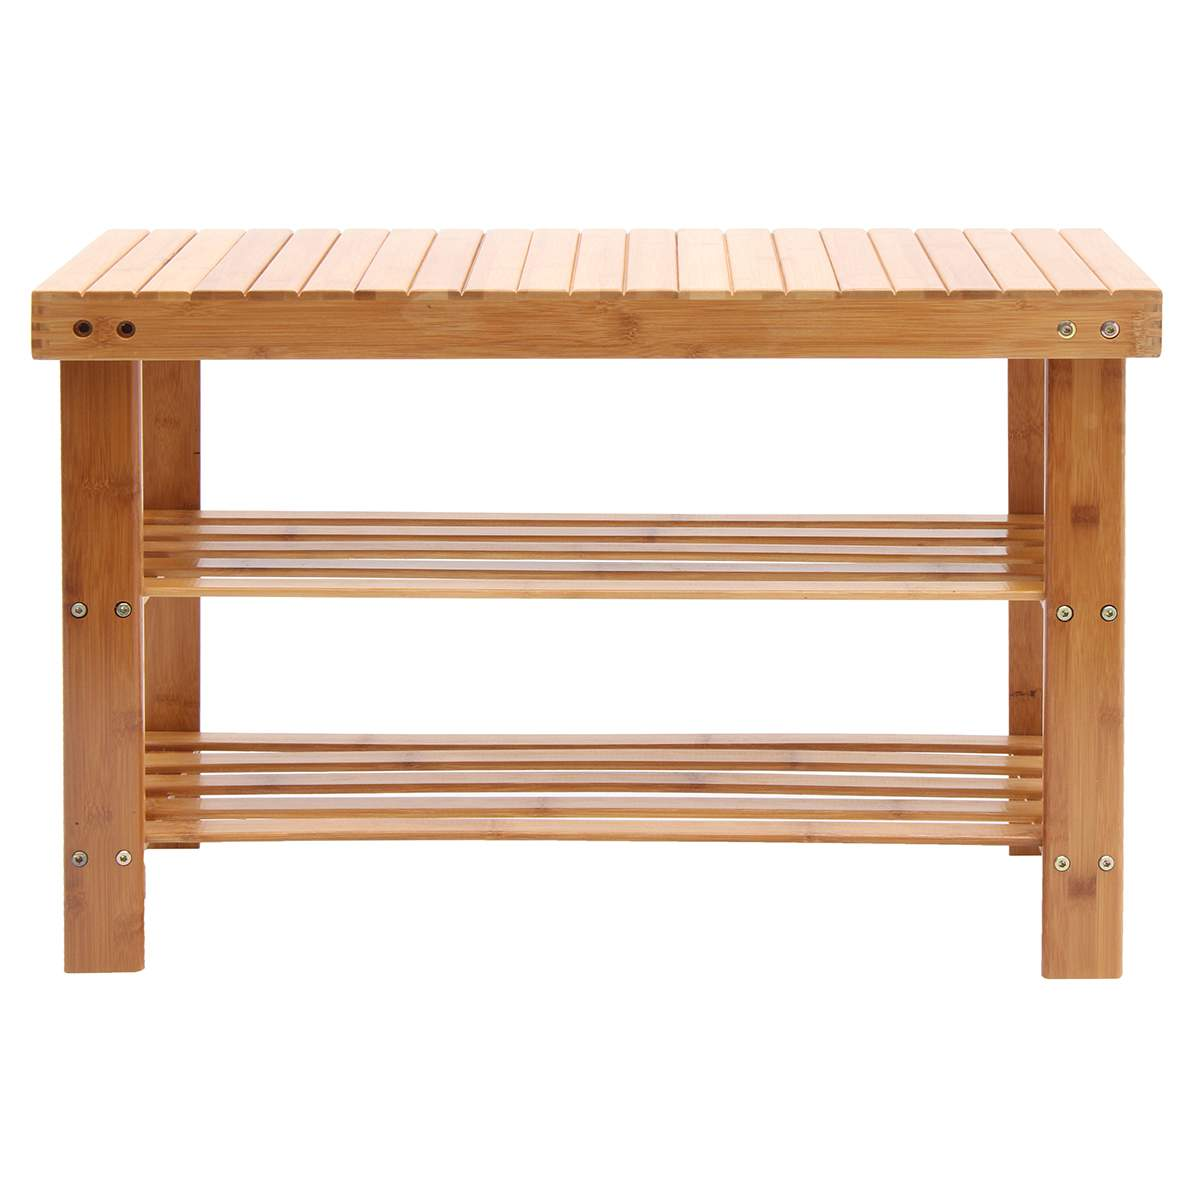 Bamboo Shoe Organizer Rack Simple Modern Change Shoes Bench Entryway Storage Shoes Cabinet Multi-functional Nordic Wooden